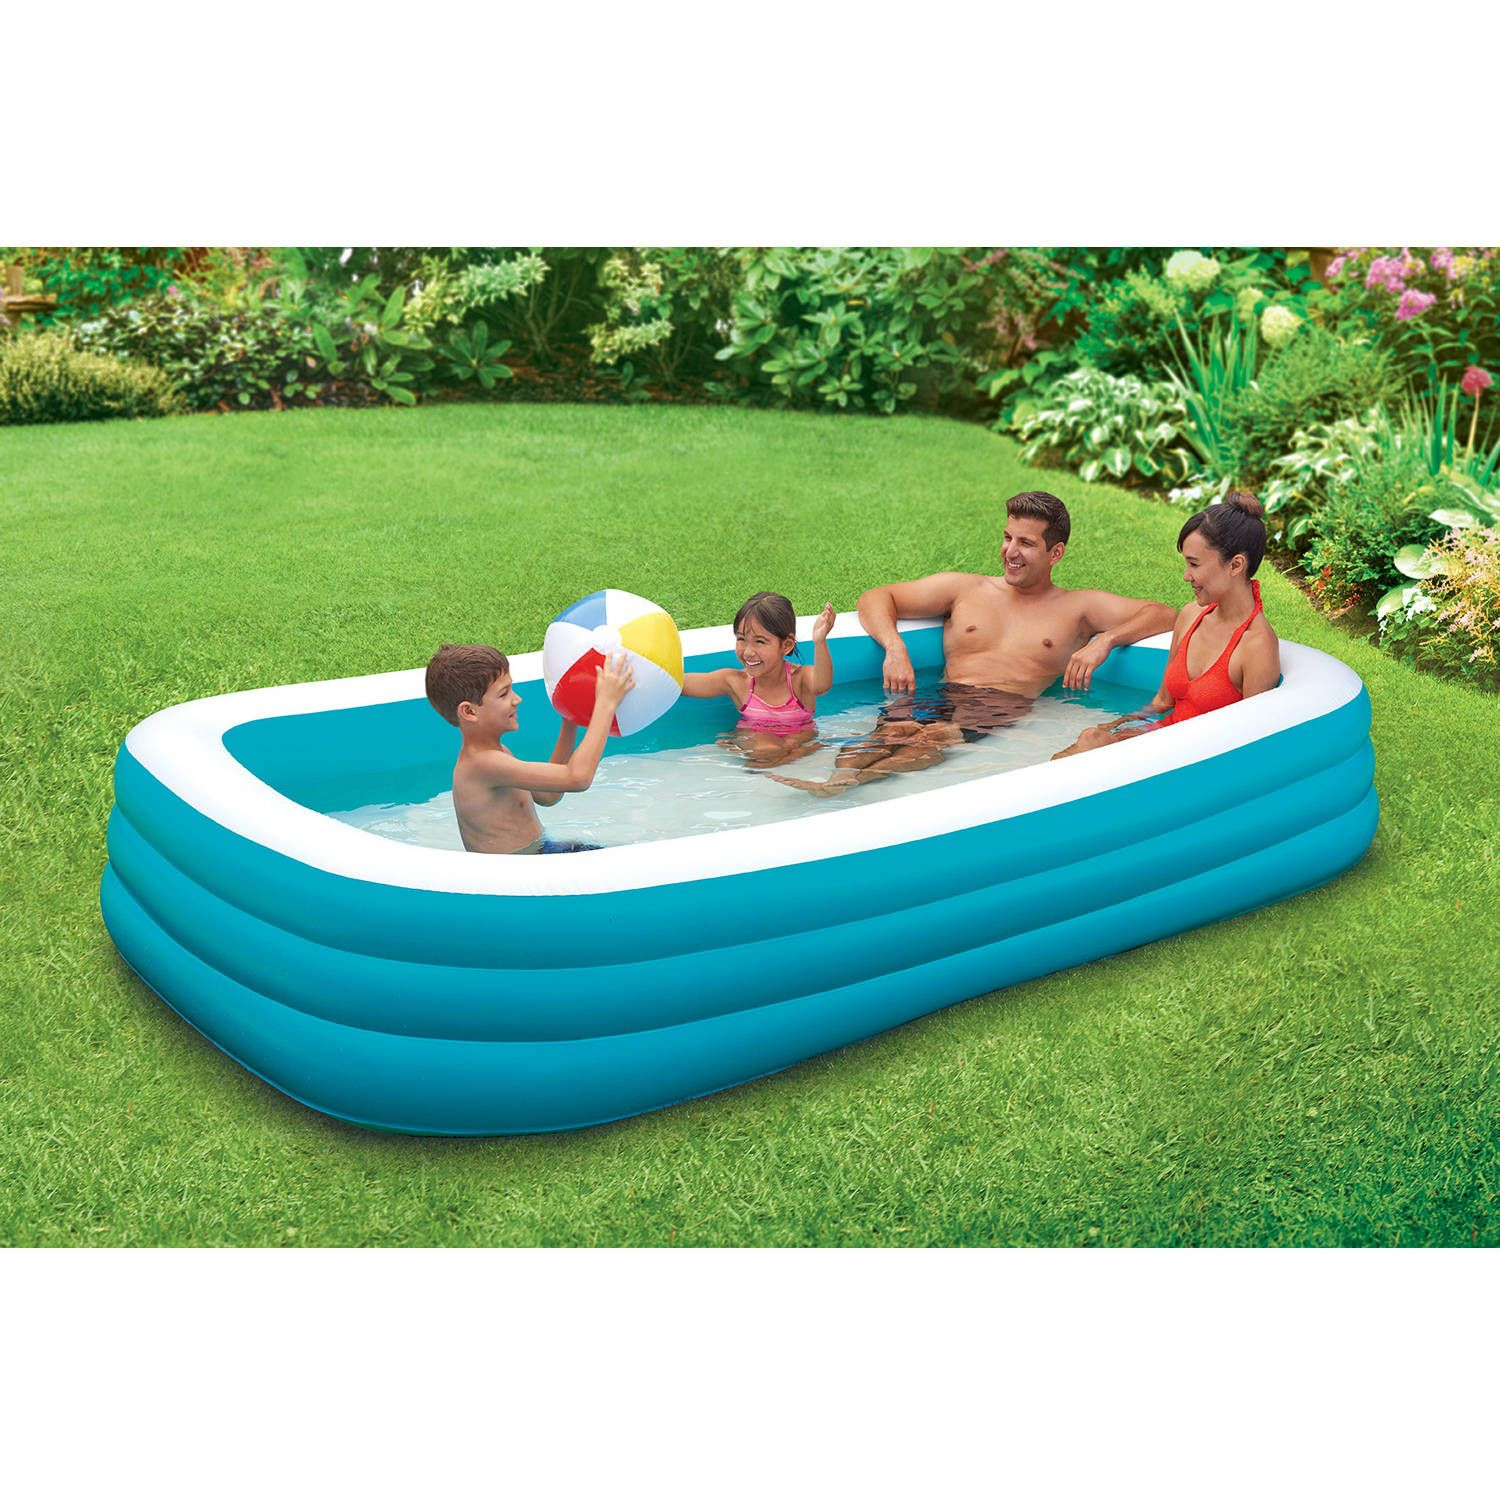 "Walmart Play Day 120"" Deluxe Family Pool ly $24 45"